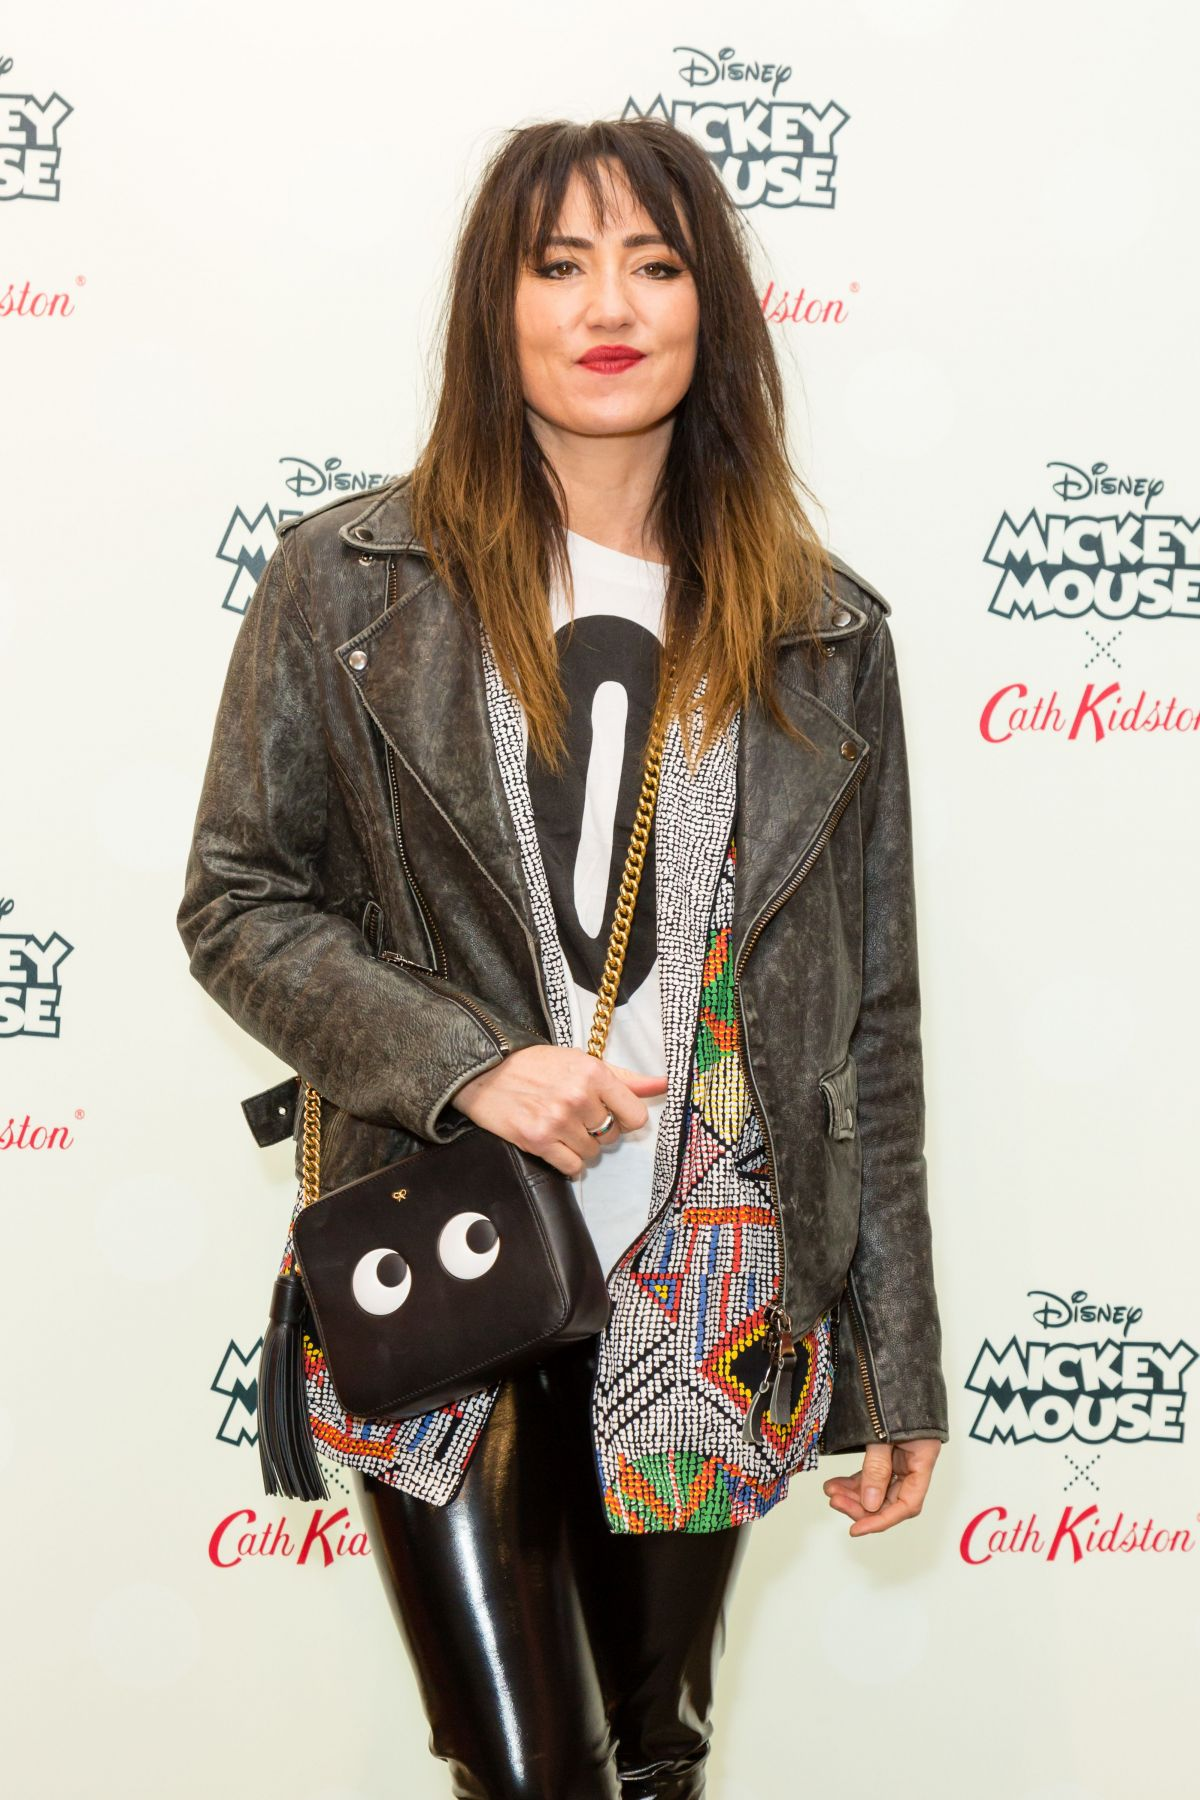 K.T. TUNSTALL at Disney x Cath Kidston Mickey and Minnie Exclusive VIP Launch in London 12/02/2016